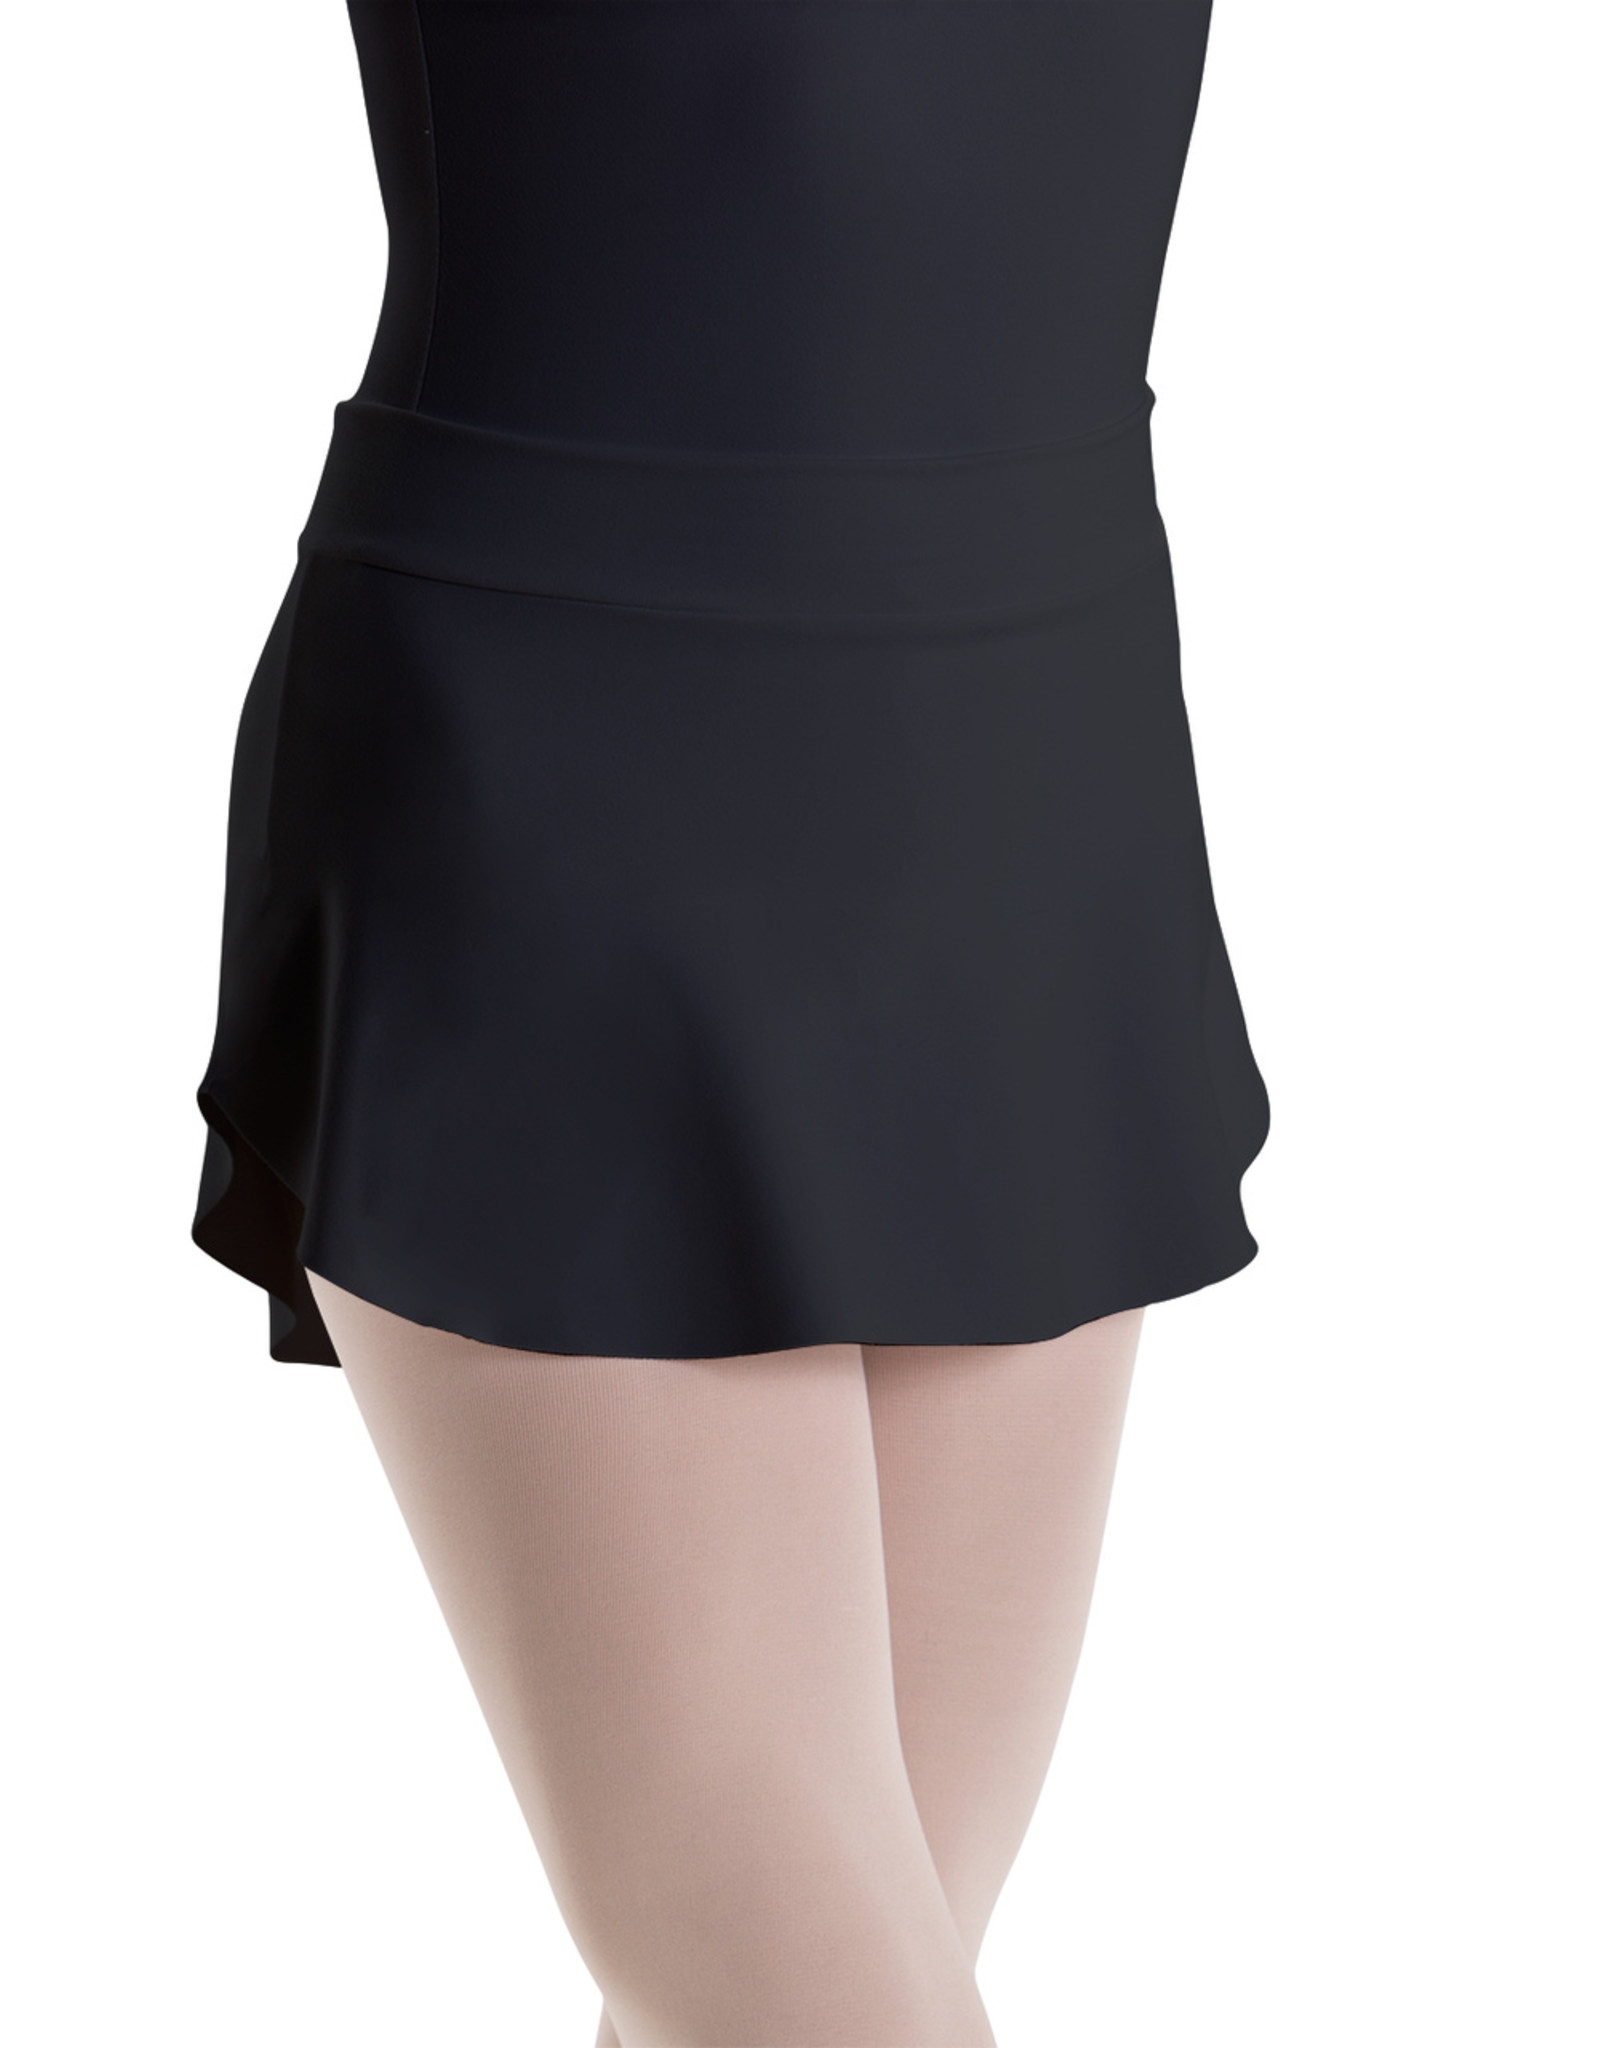 MOTIONWEAR PULL-ON SKIRT (1236)